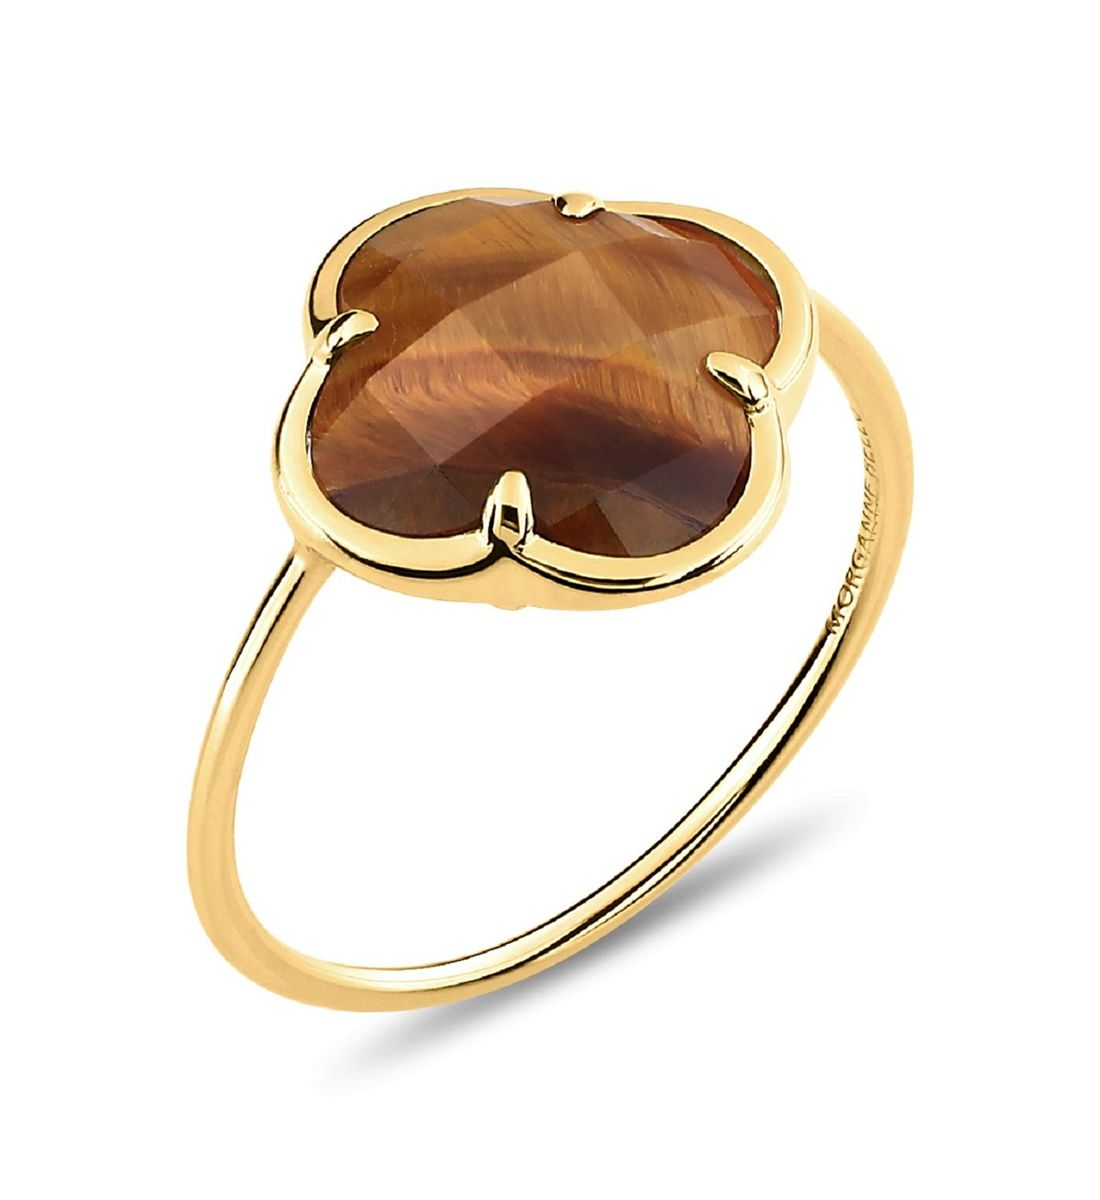 mordante-bello-bague-trefle-marron